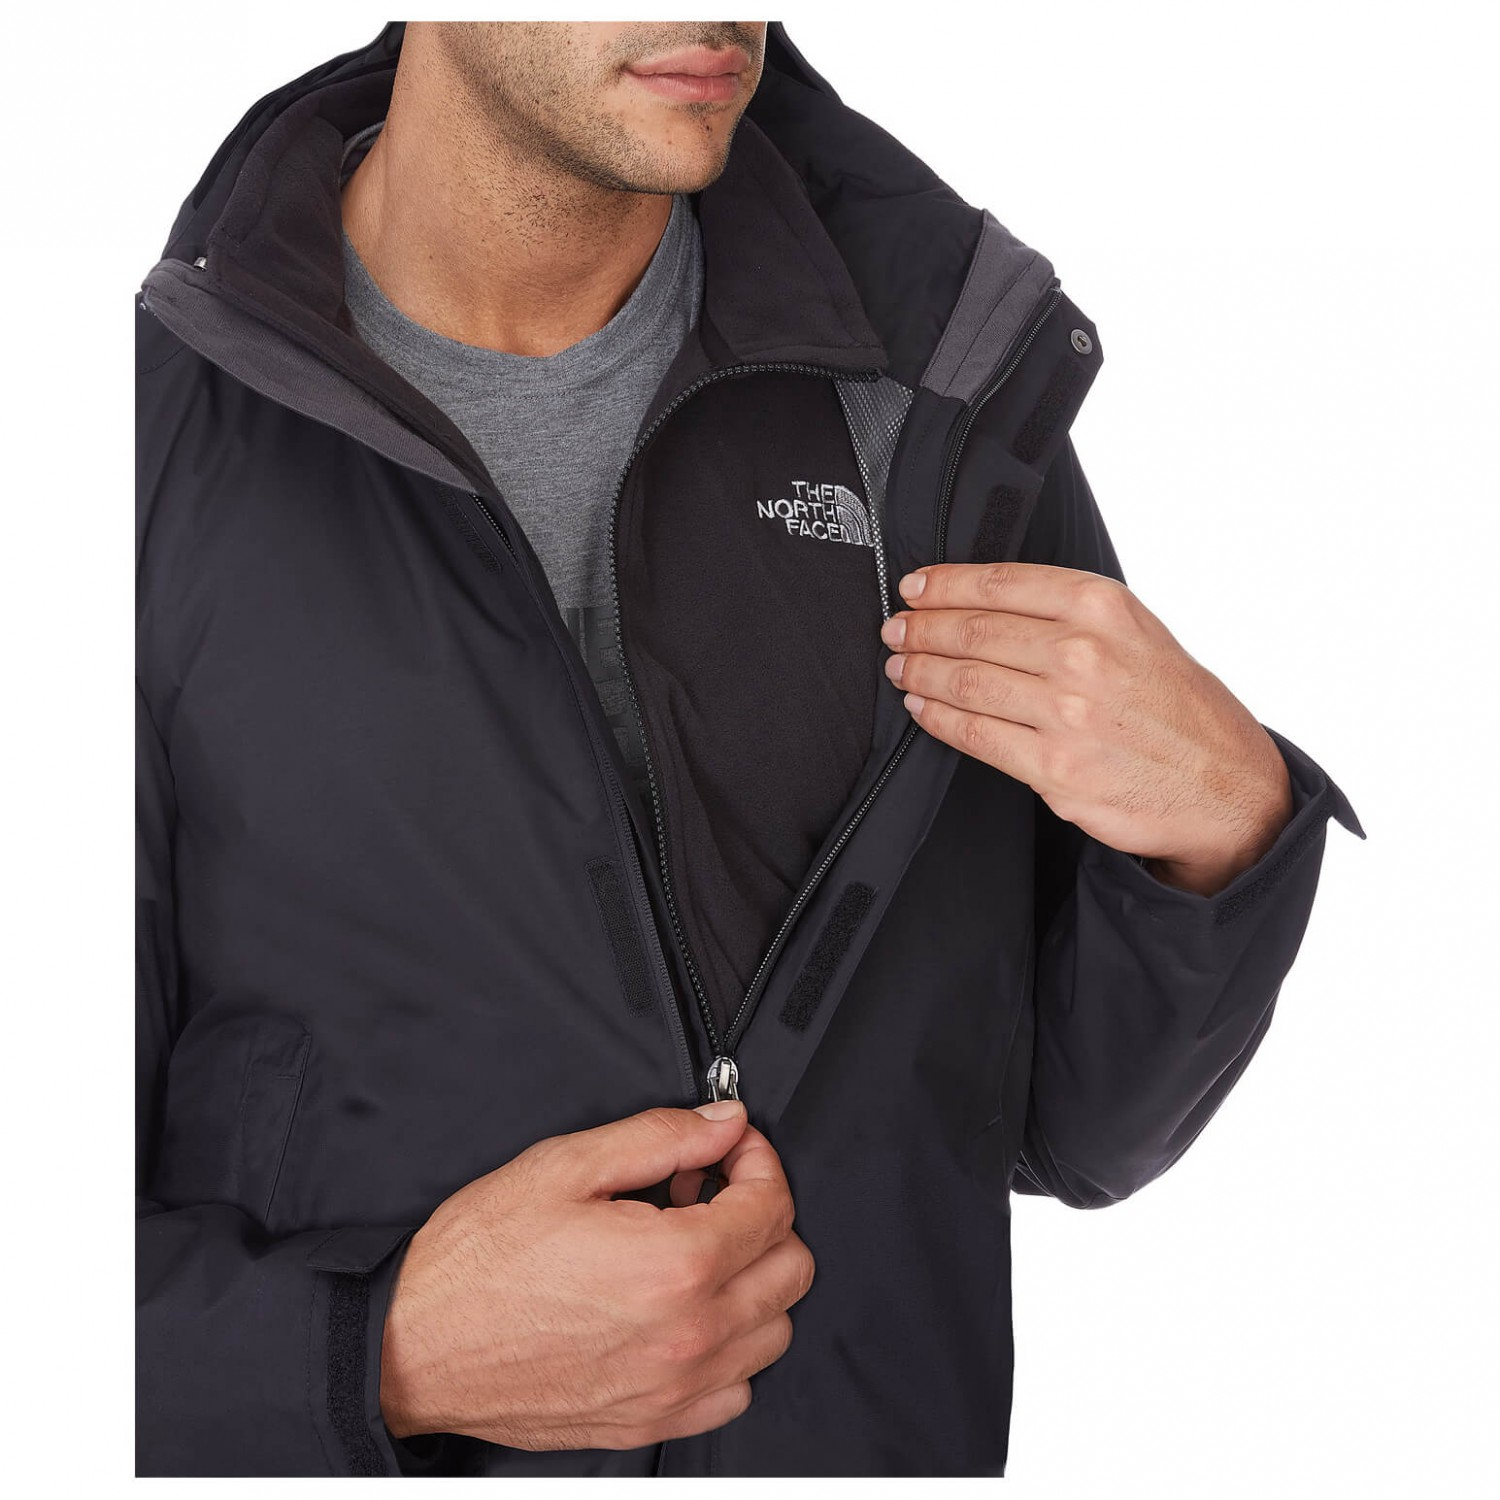 The North Face Evolution II Triclimate Jacket 3 in 1 jacket TNF Black | XS